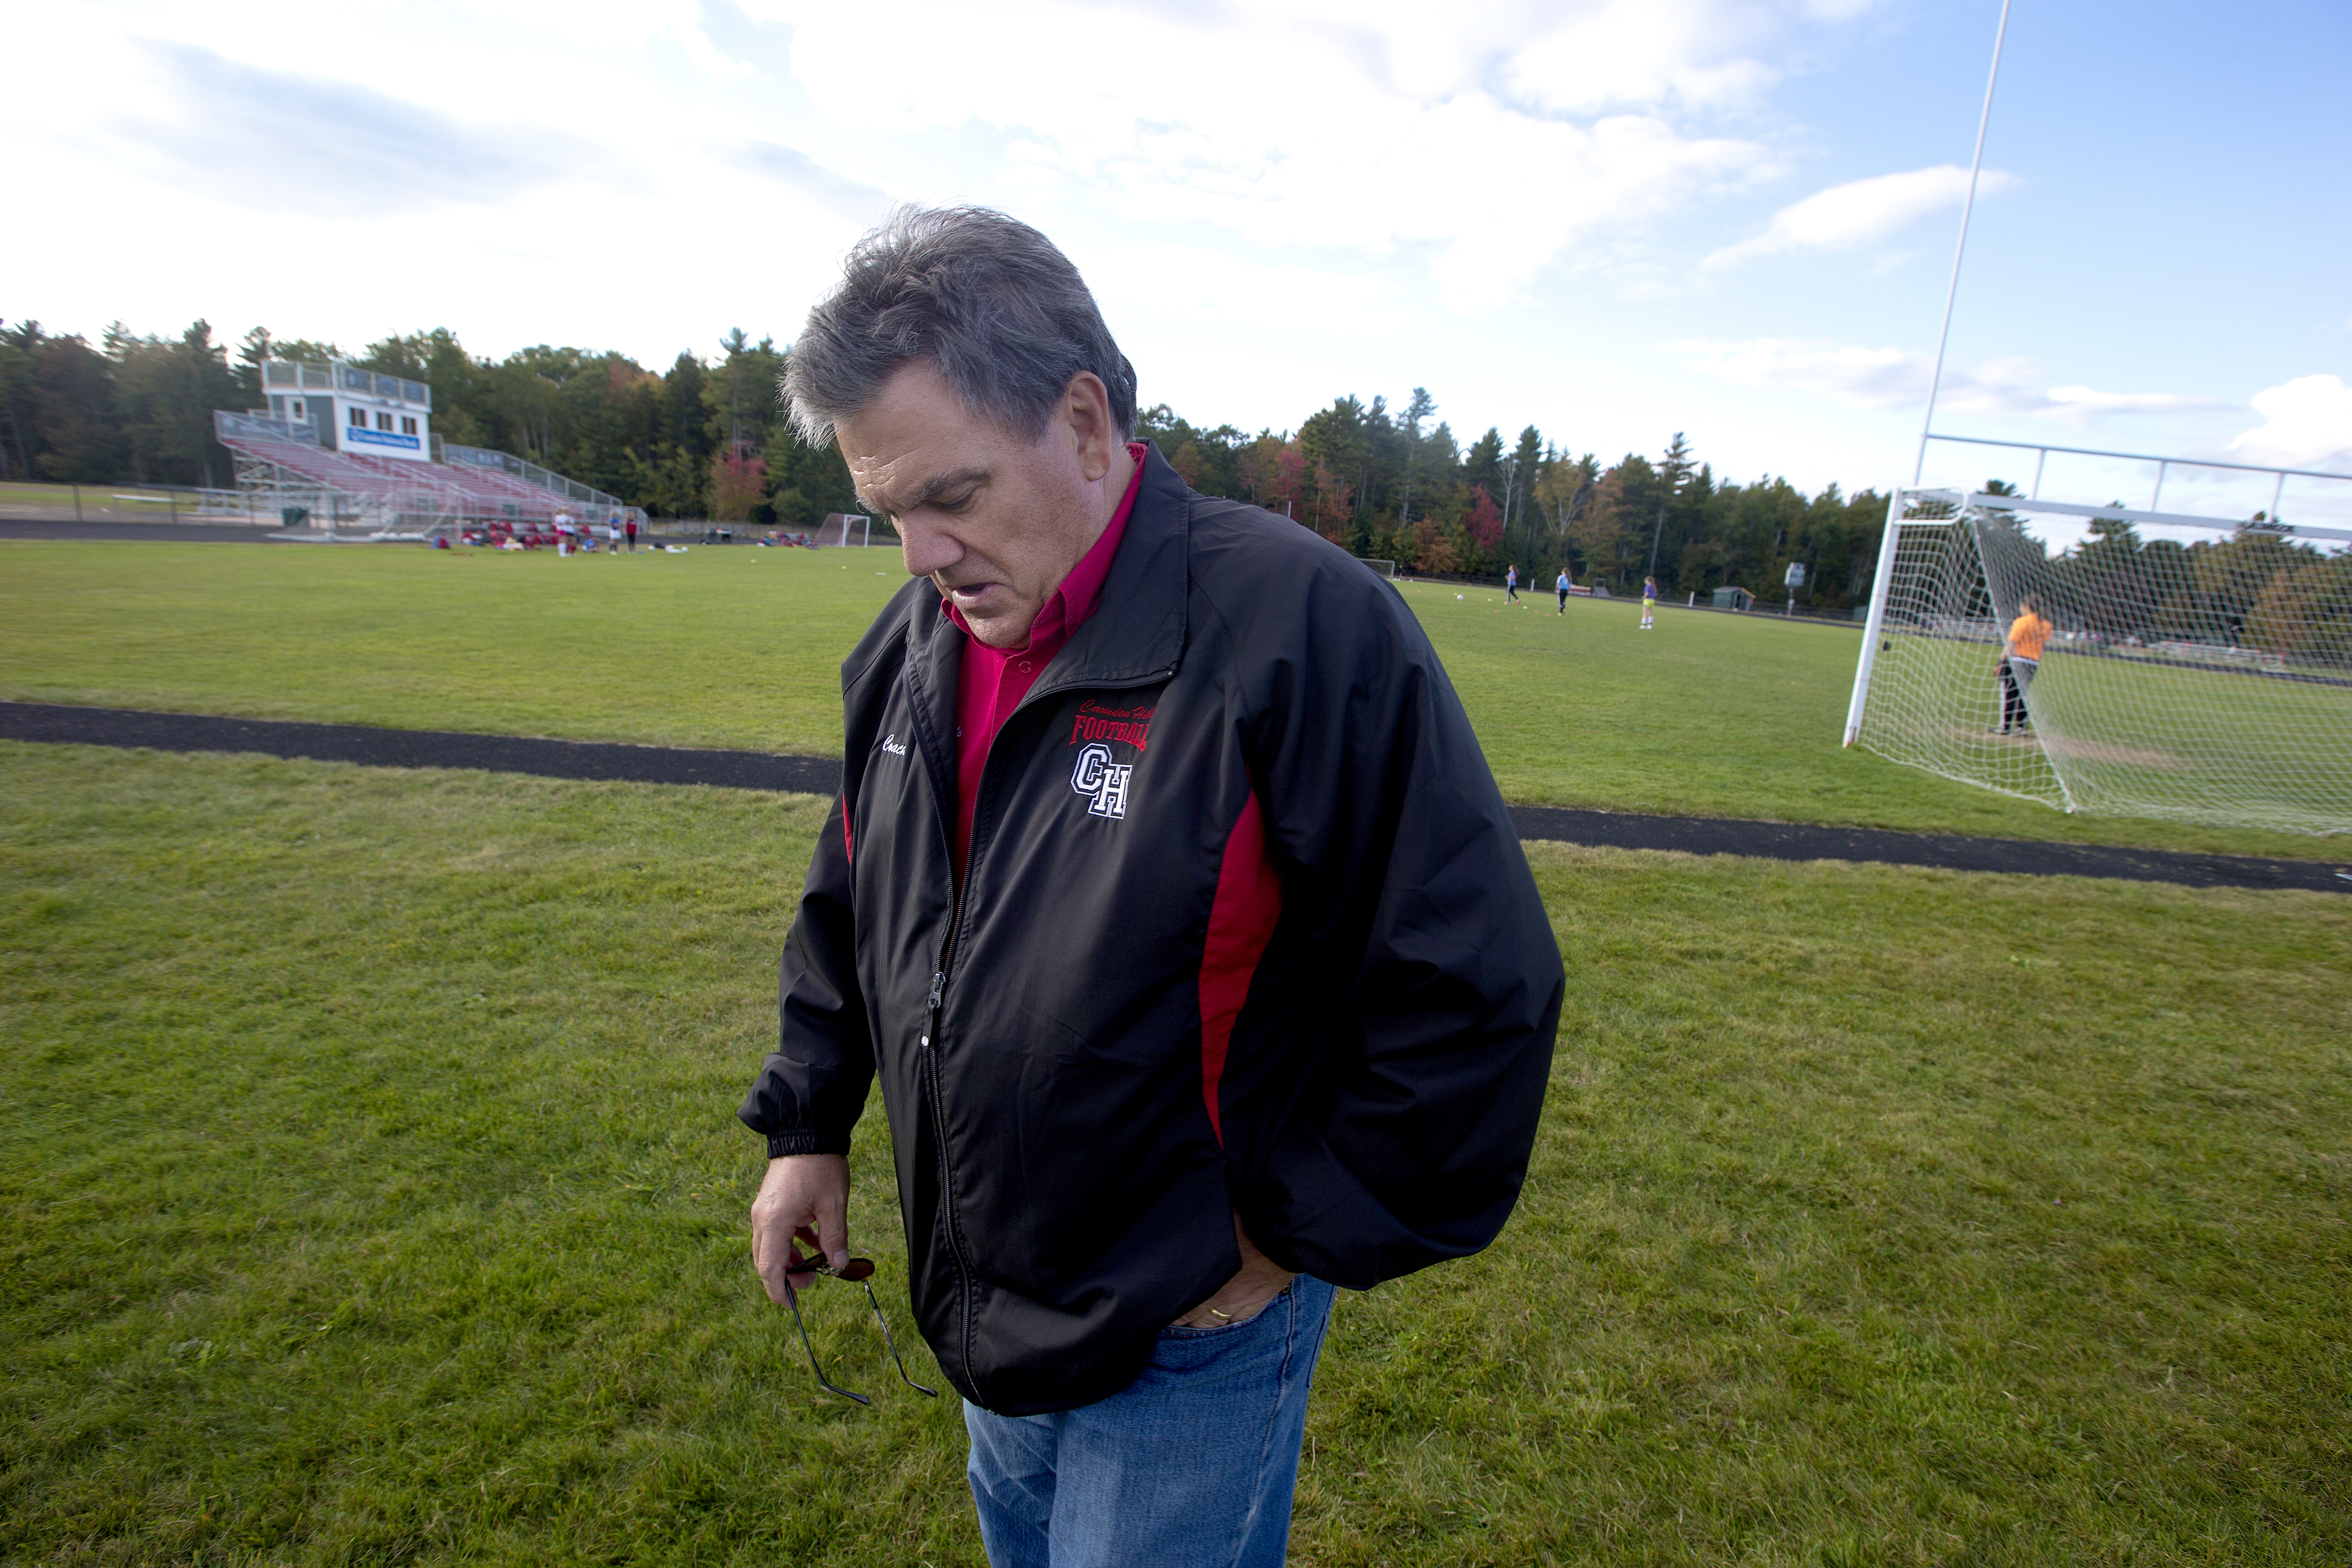 Fearful of injuries, a Maine high school cancels football - The